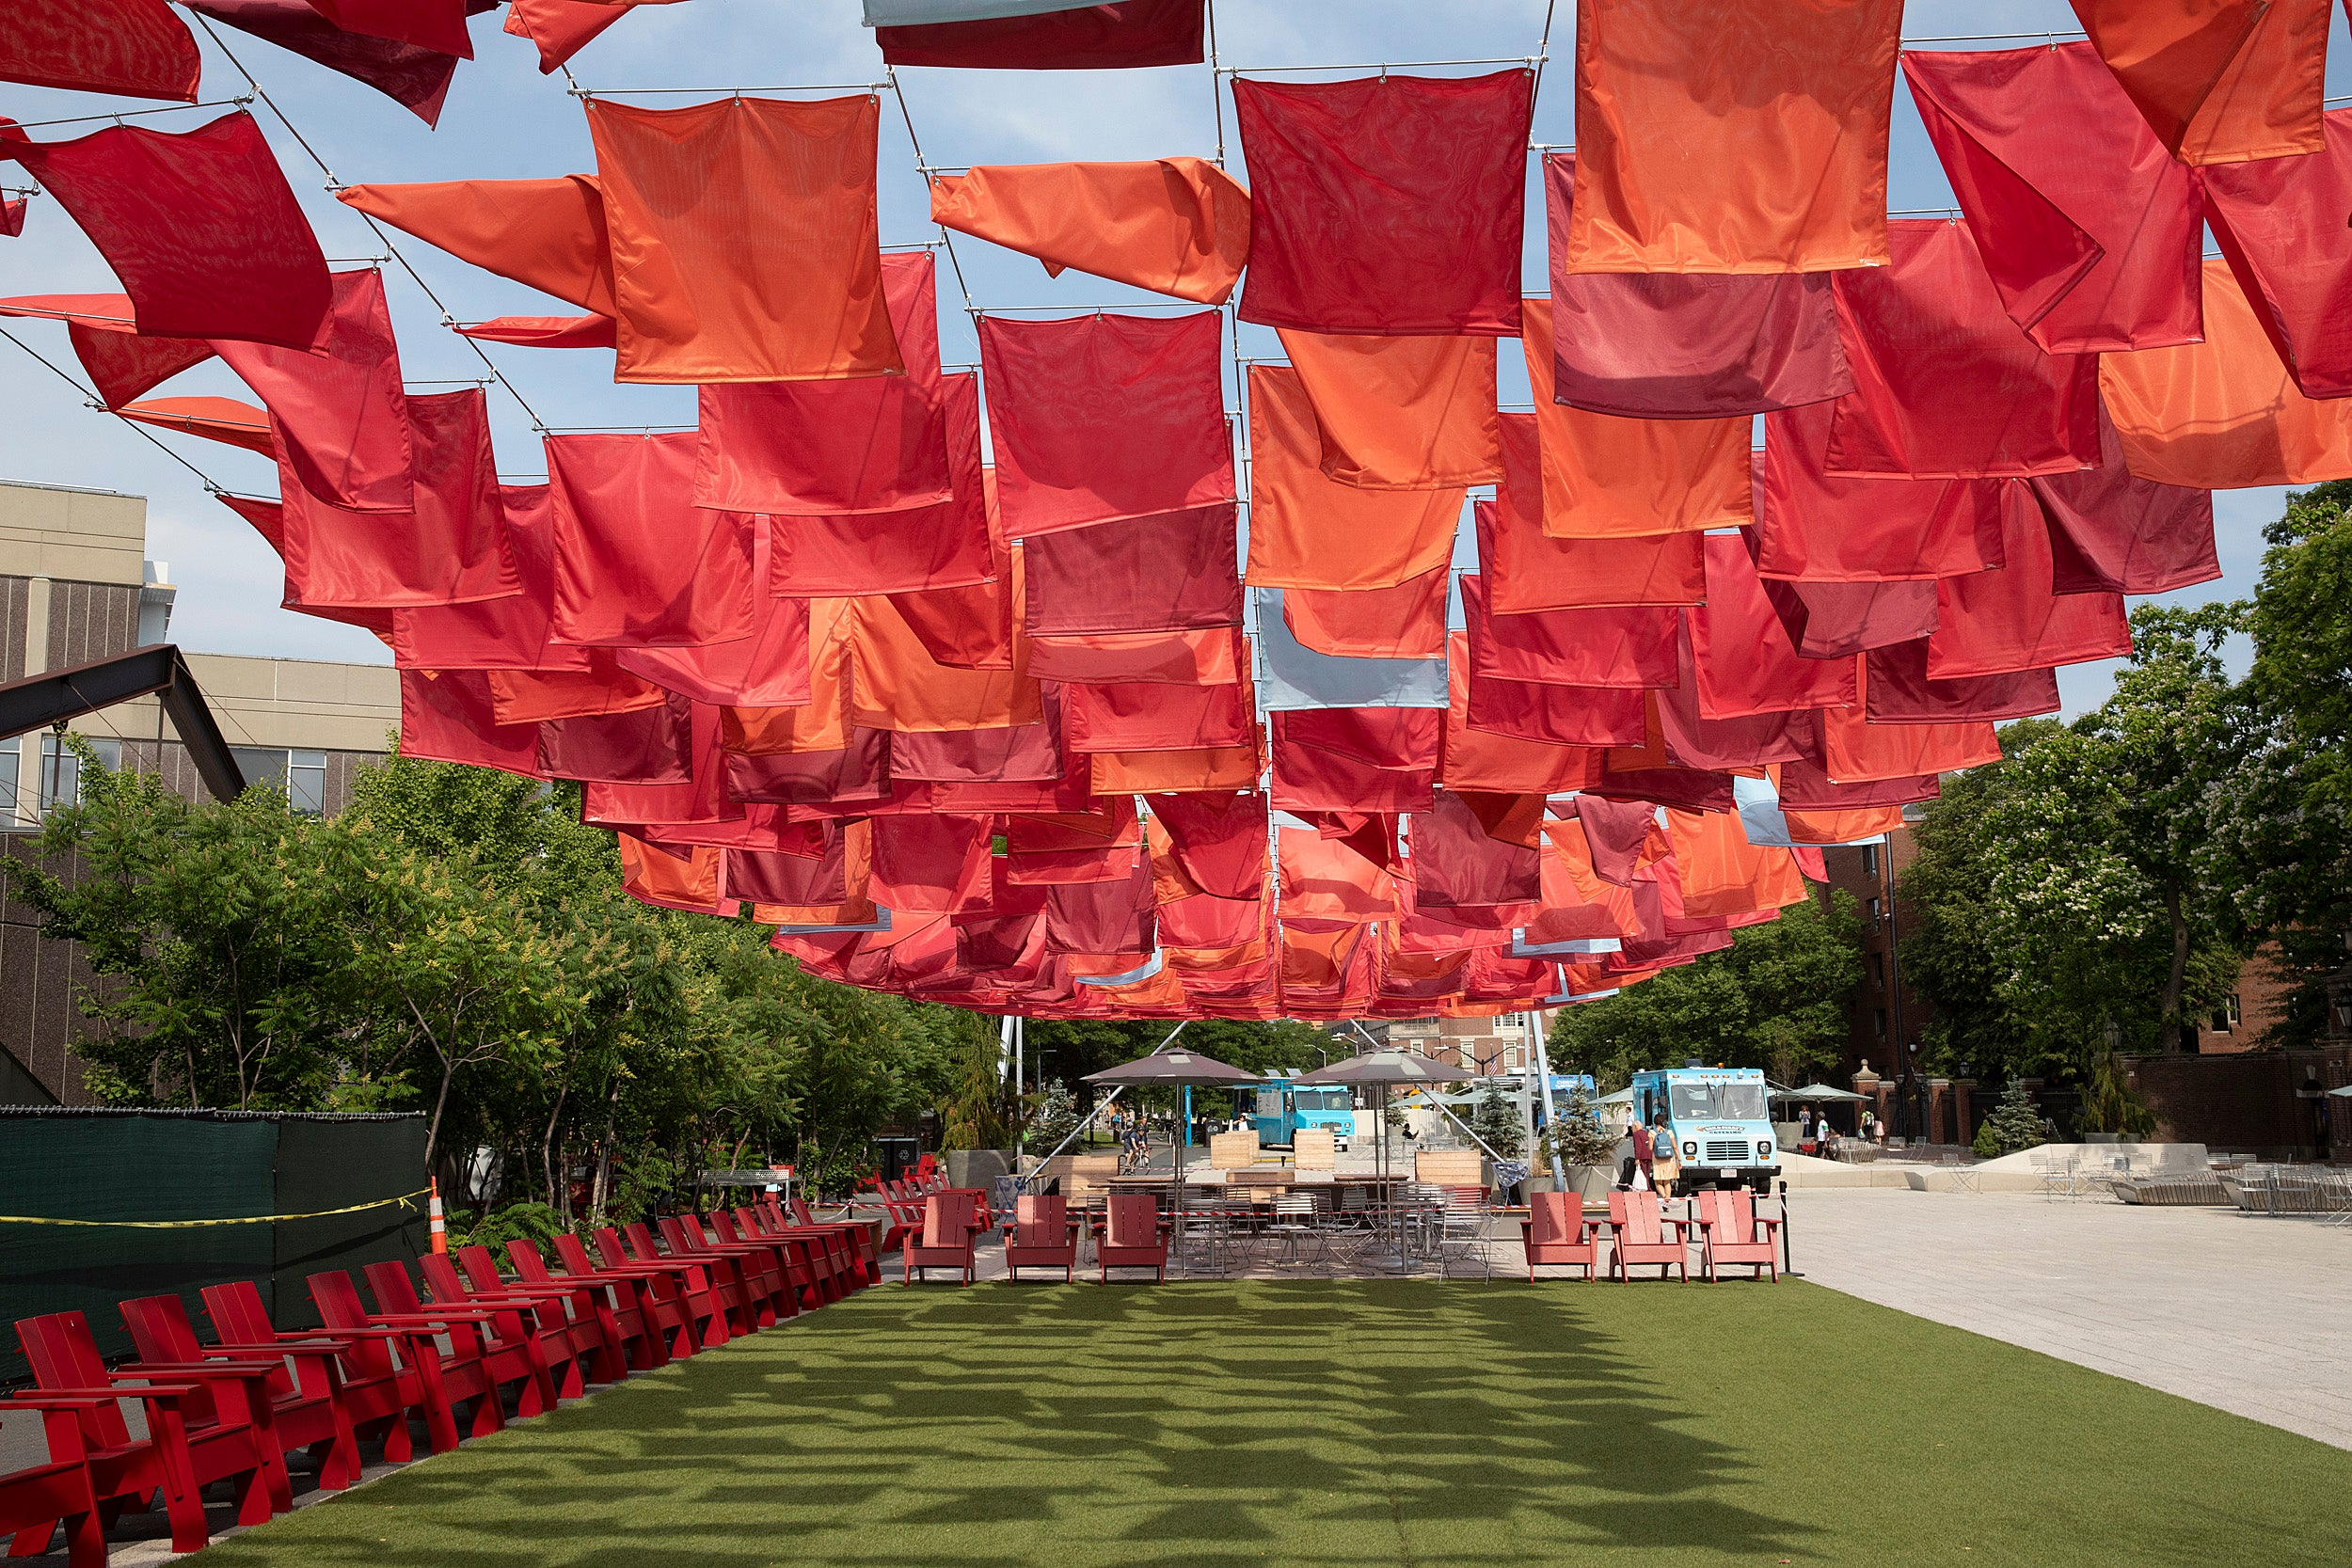 Red fabric flowing in the wind